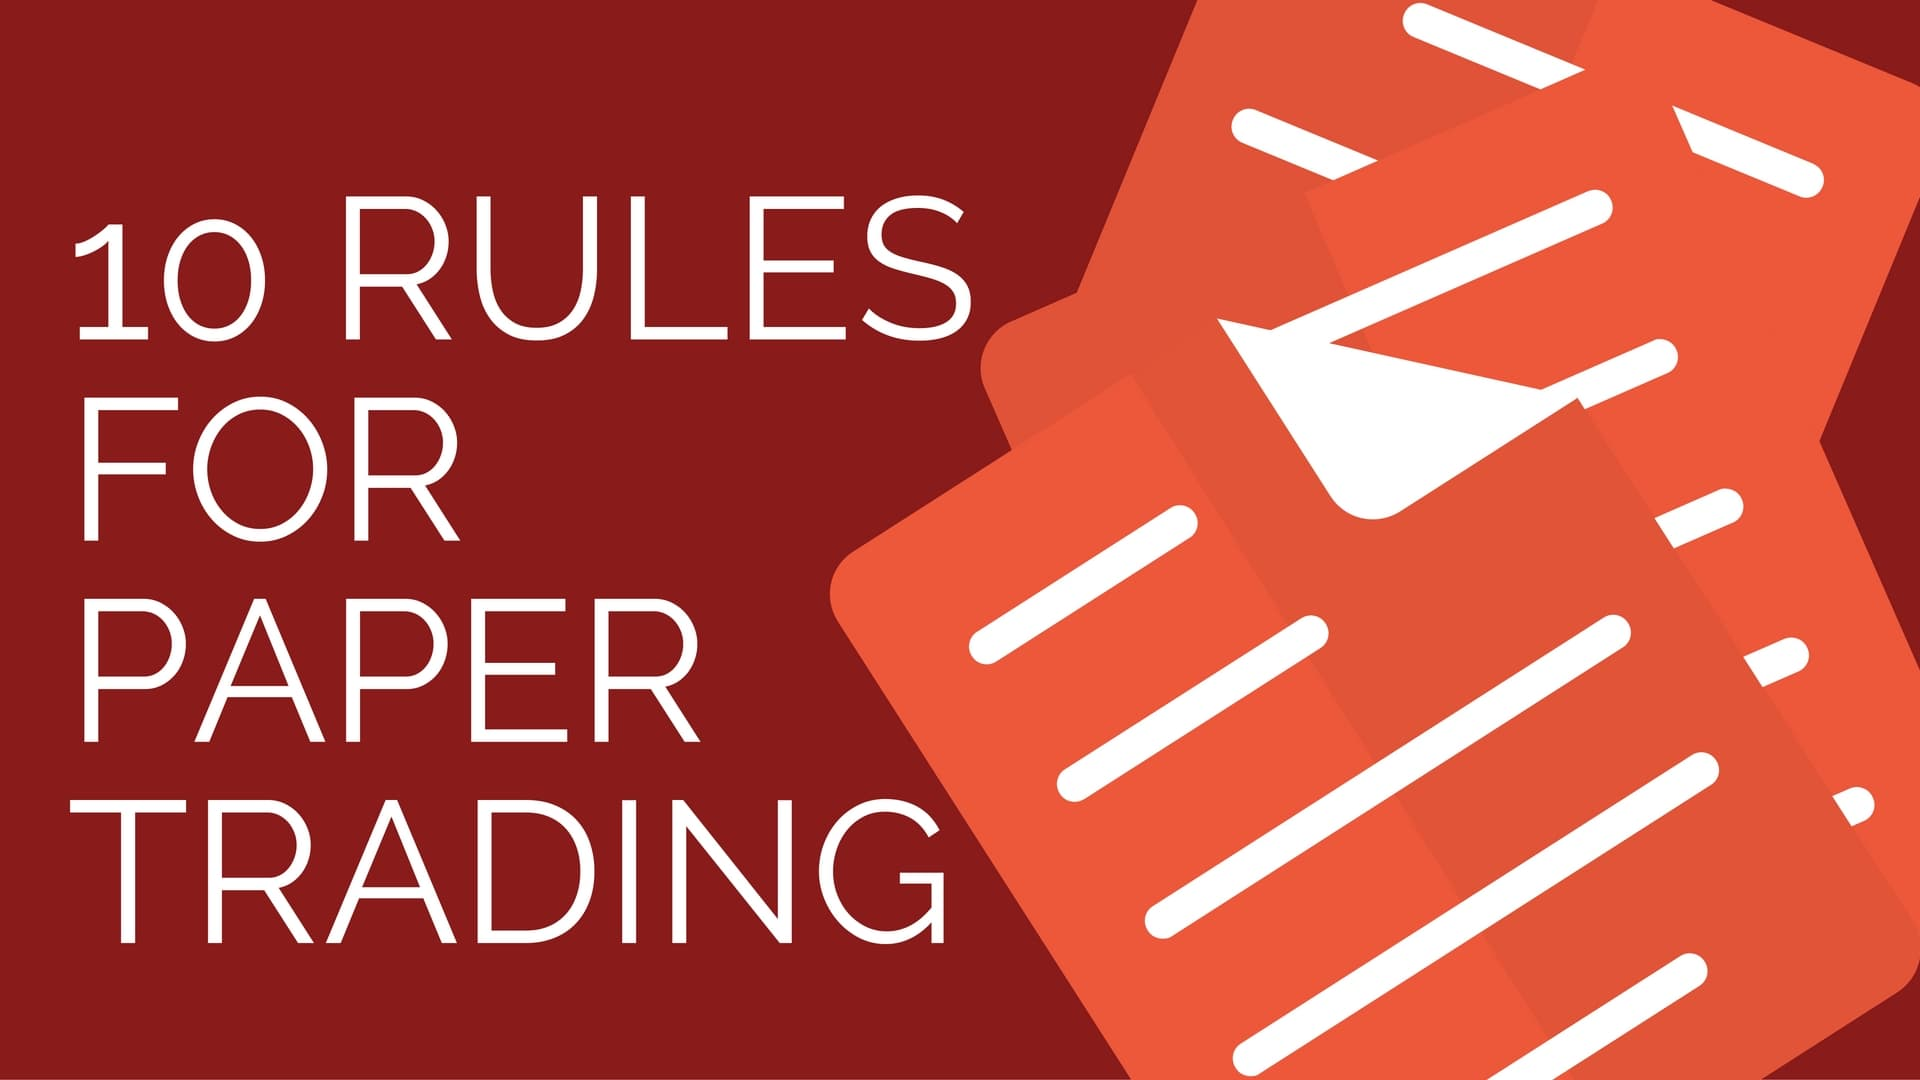 10 rules for paper trading